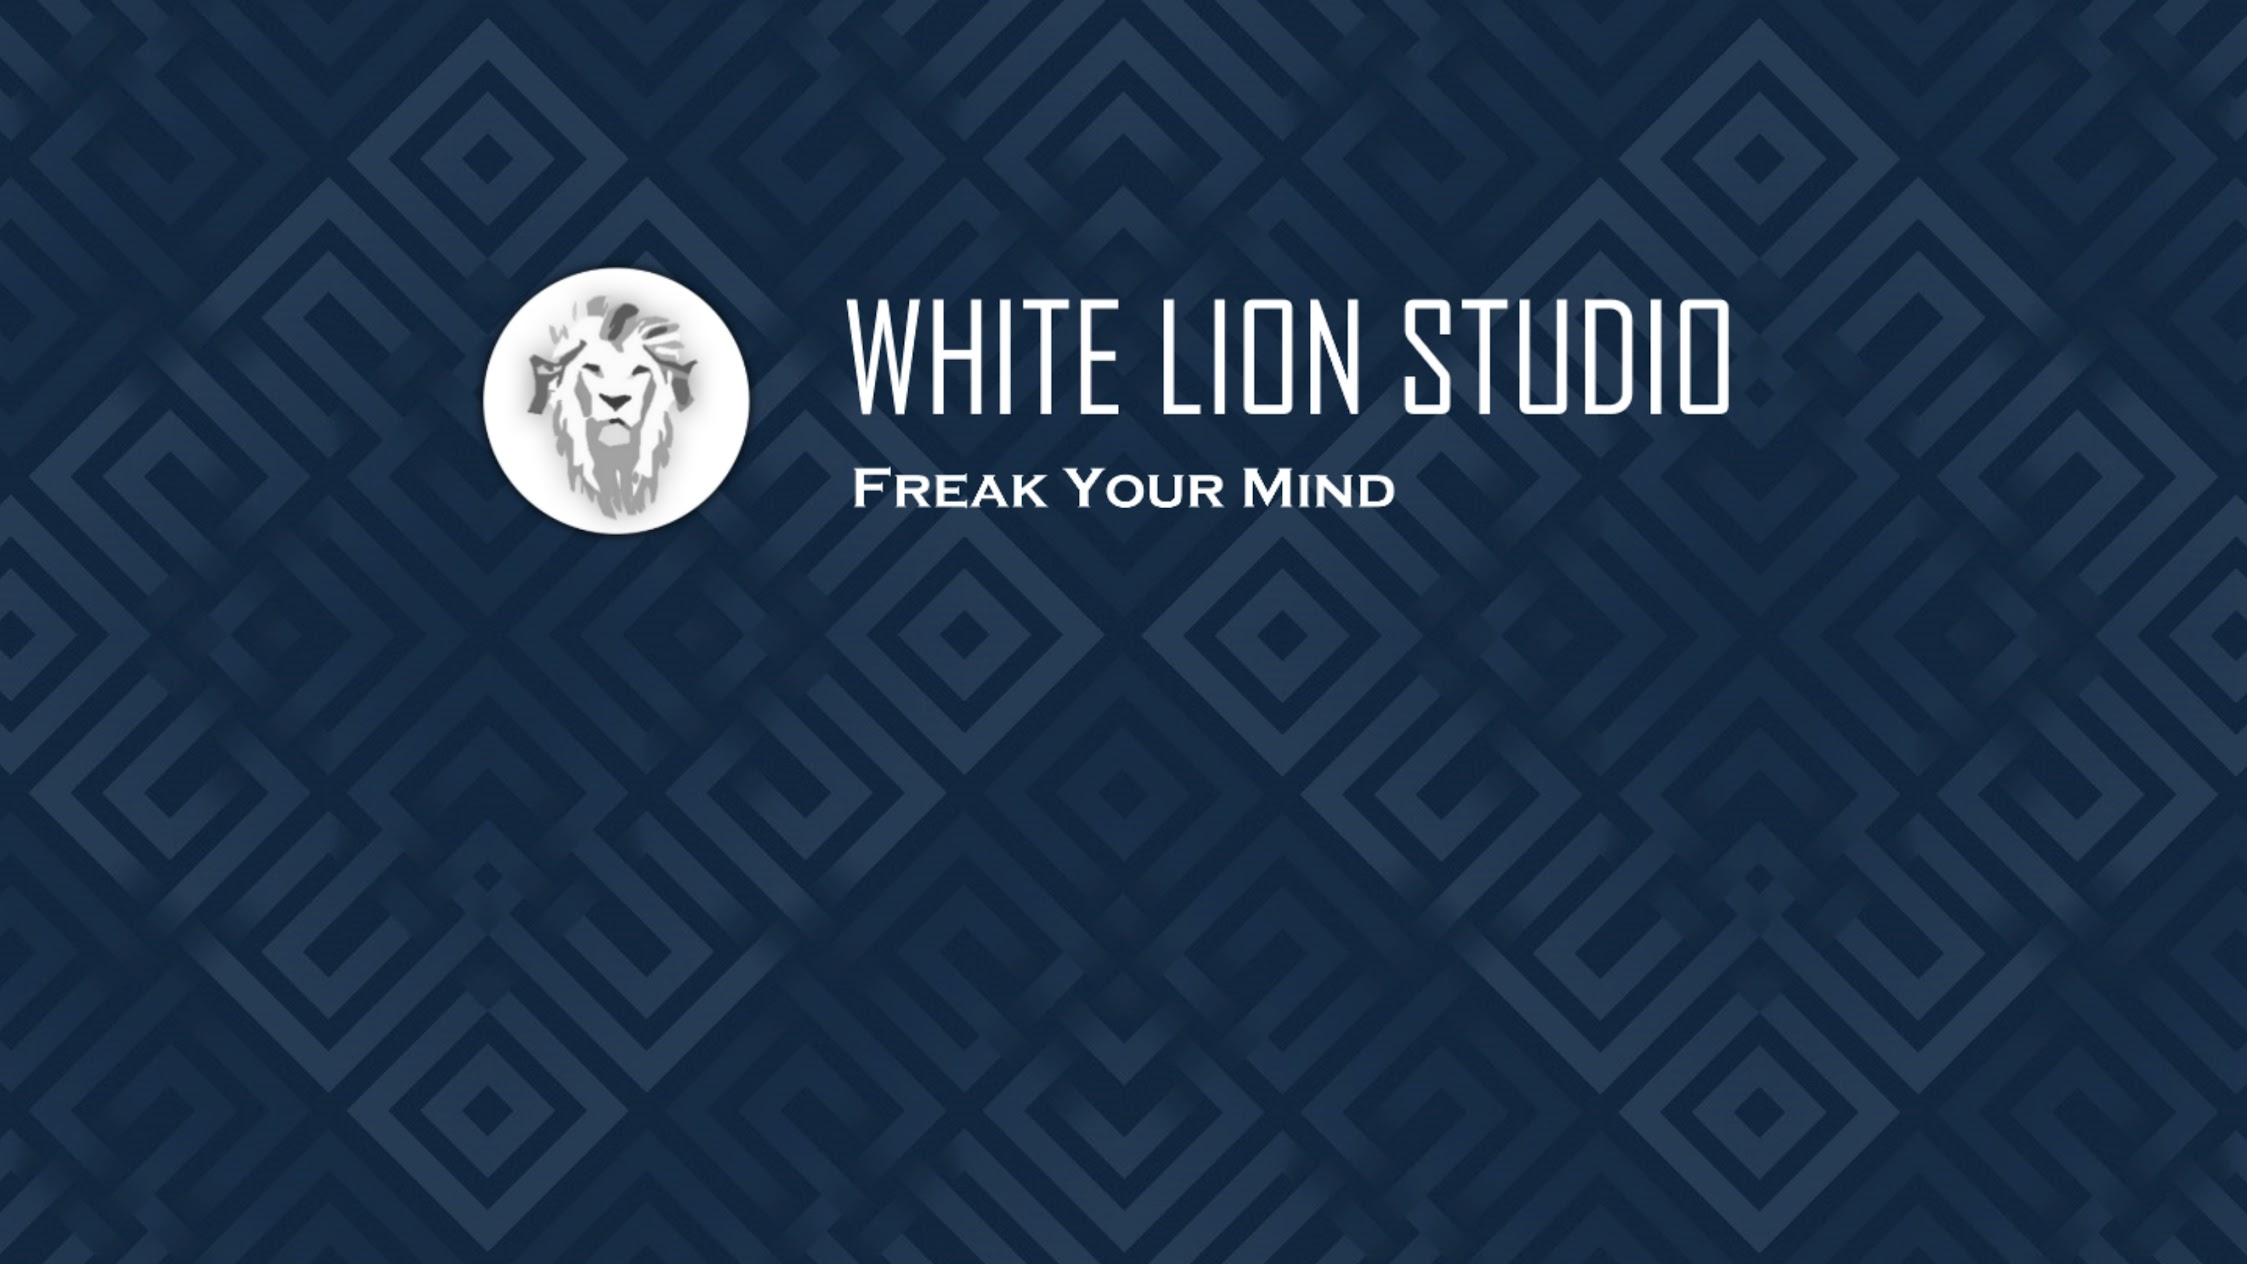 WHITE LION STUDIO